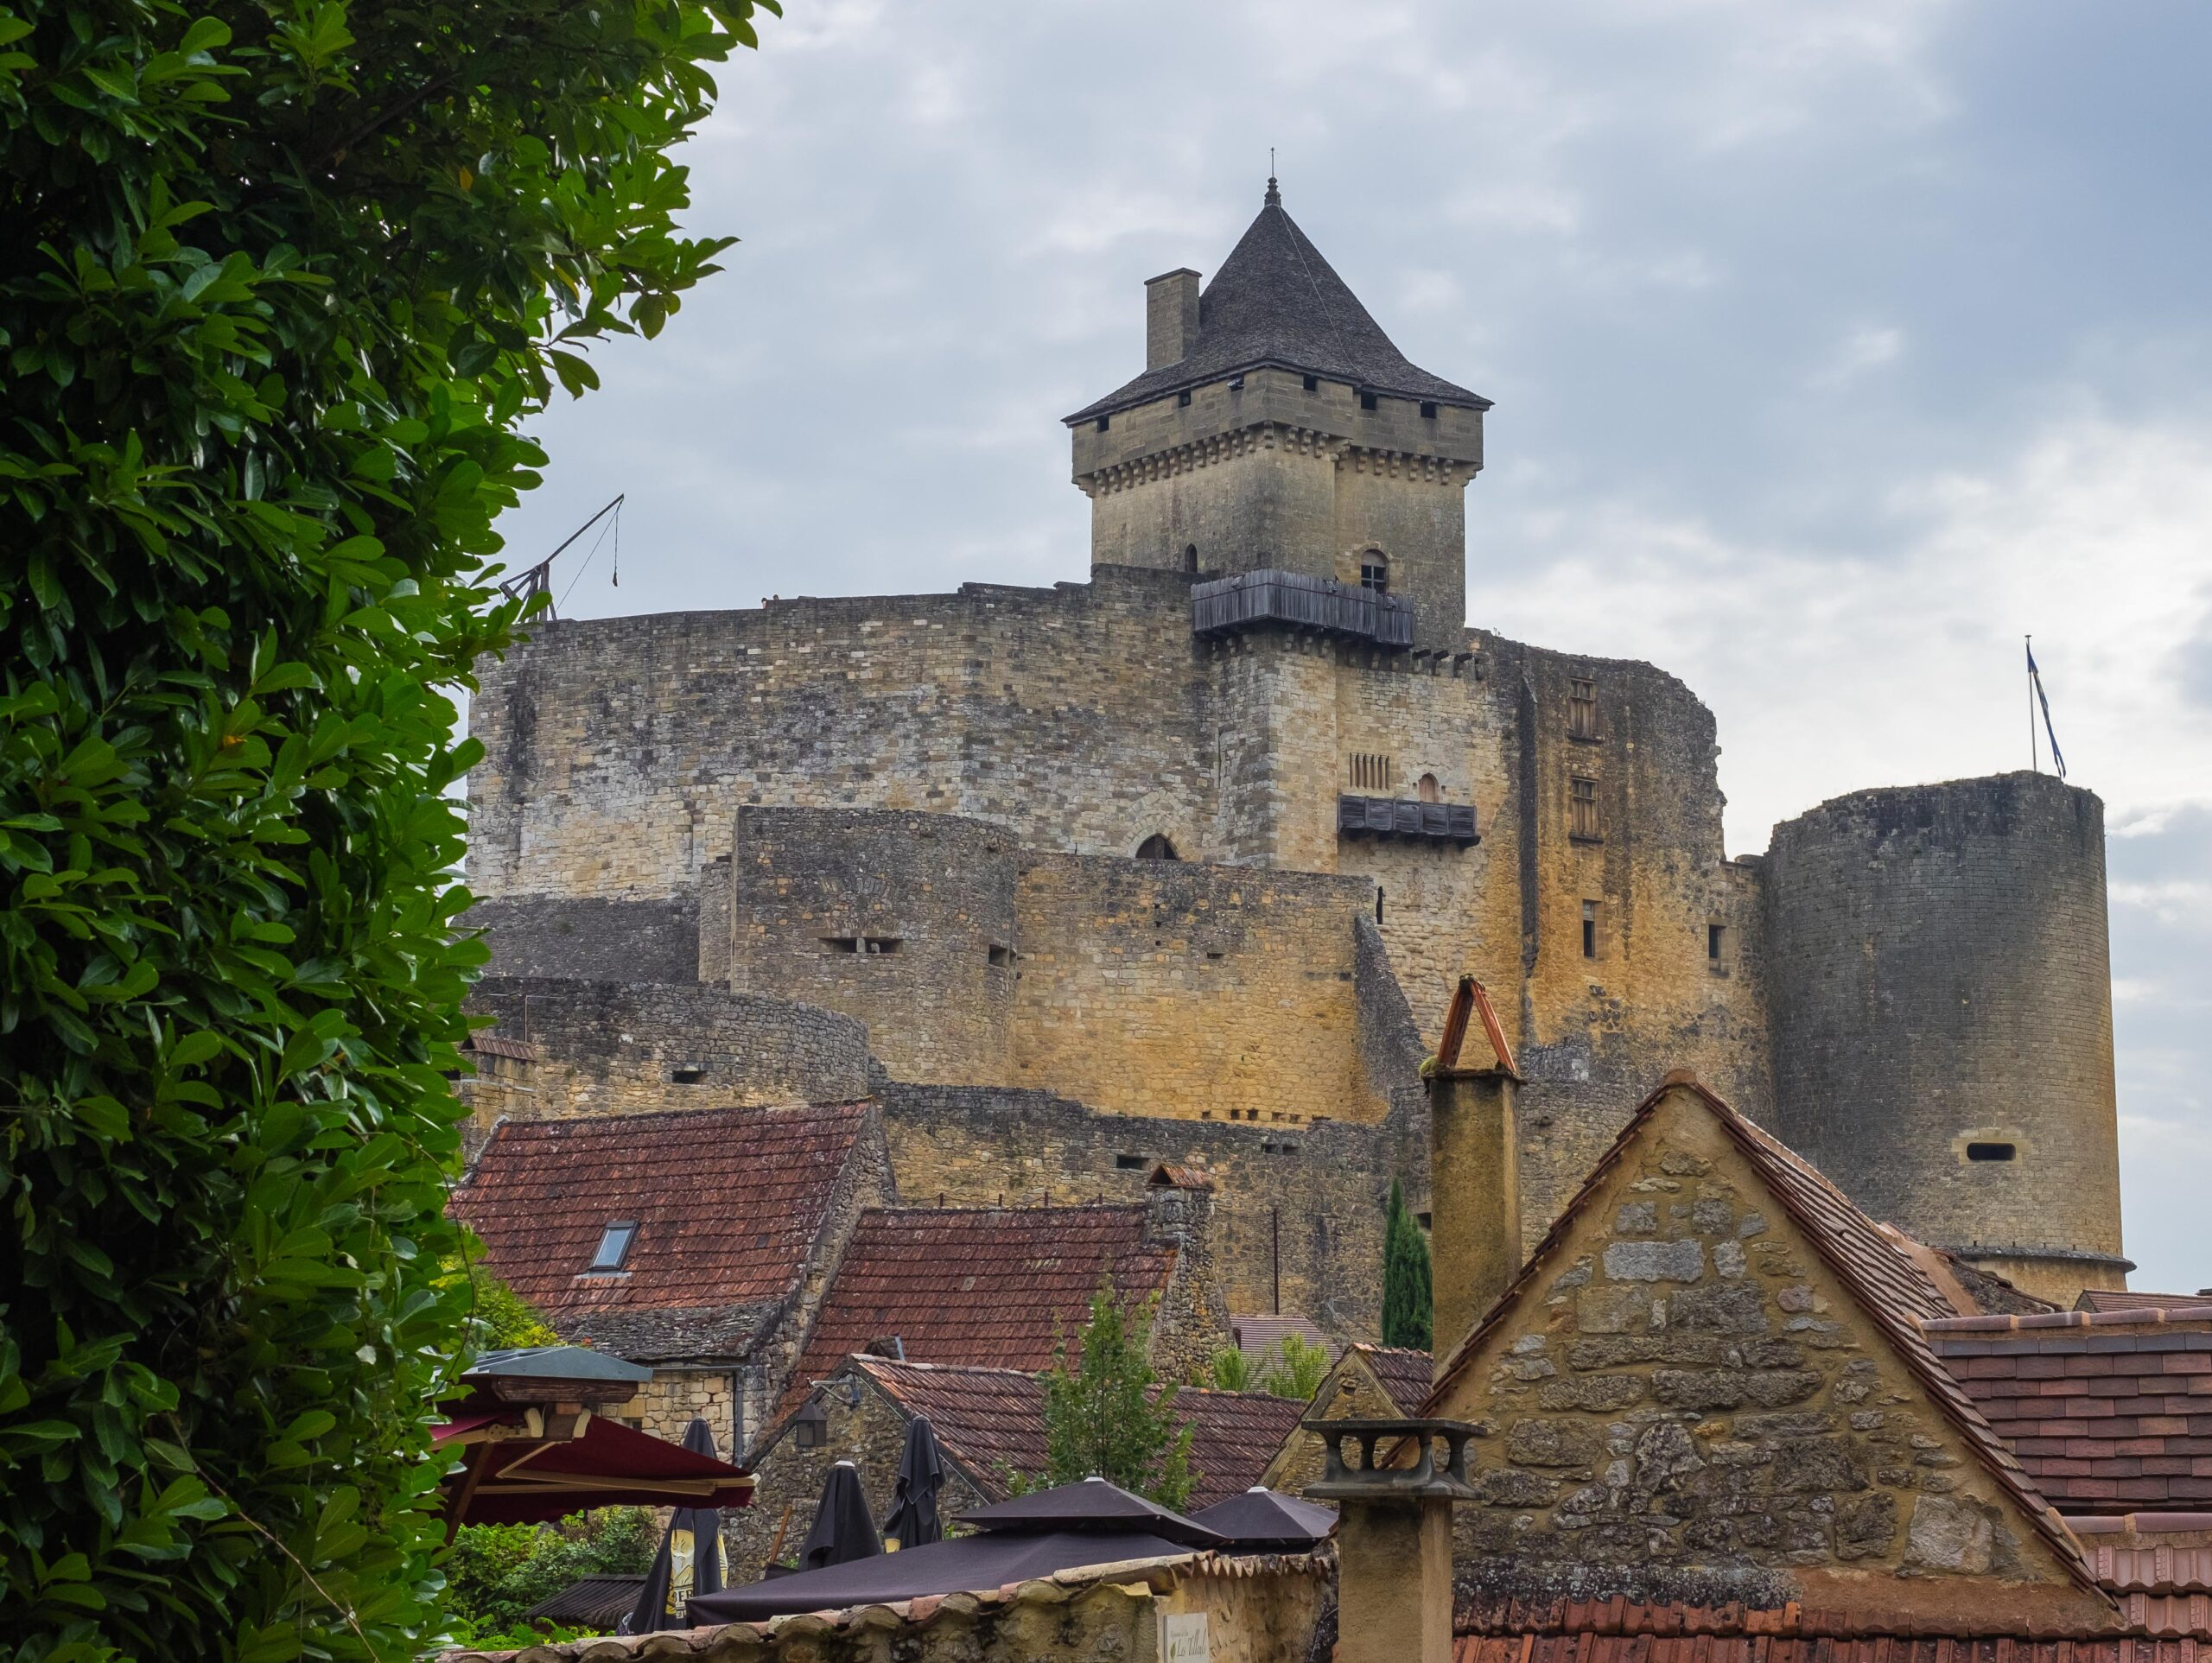 At Parentignat – a chateau that feels like a comfortable family home